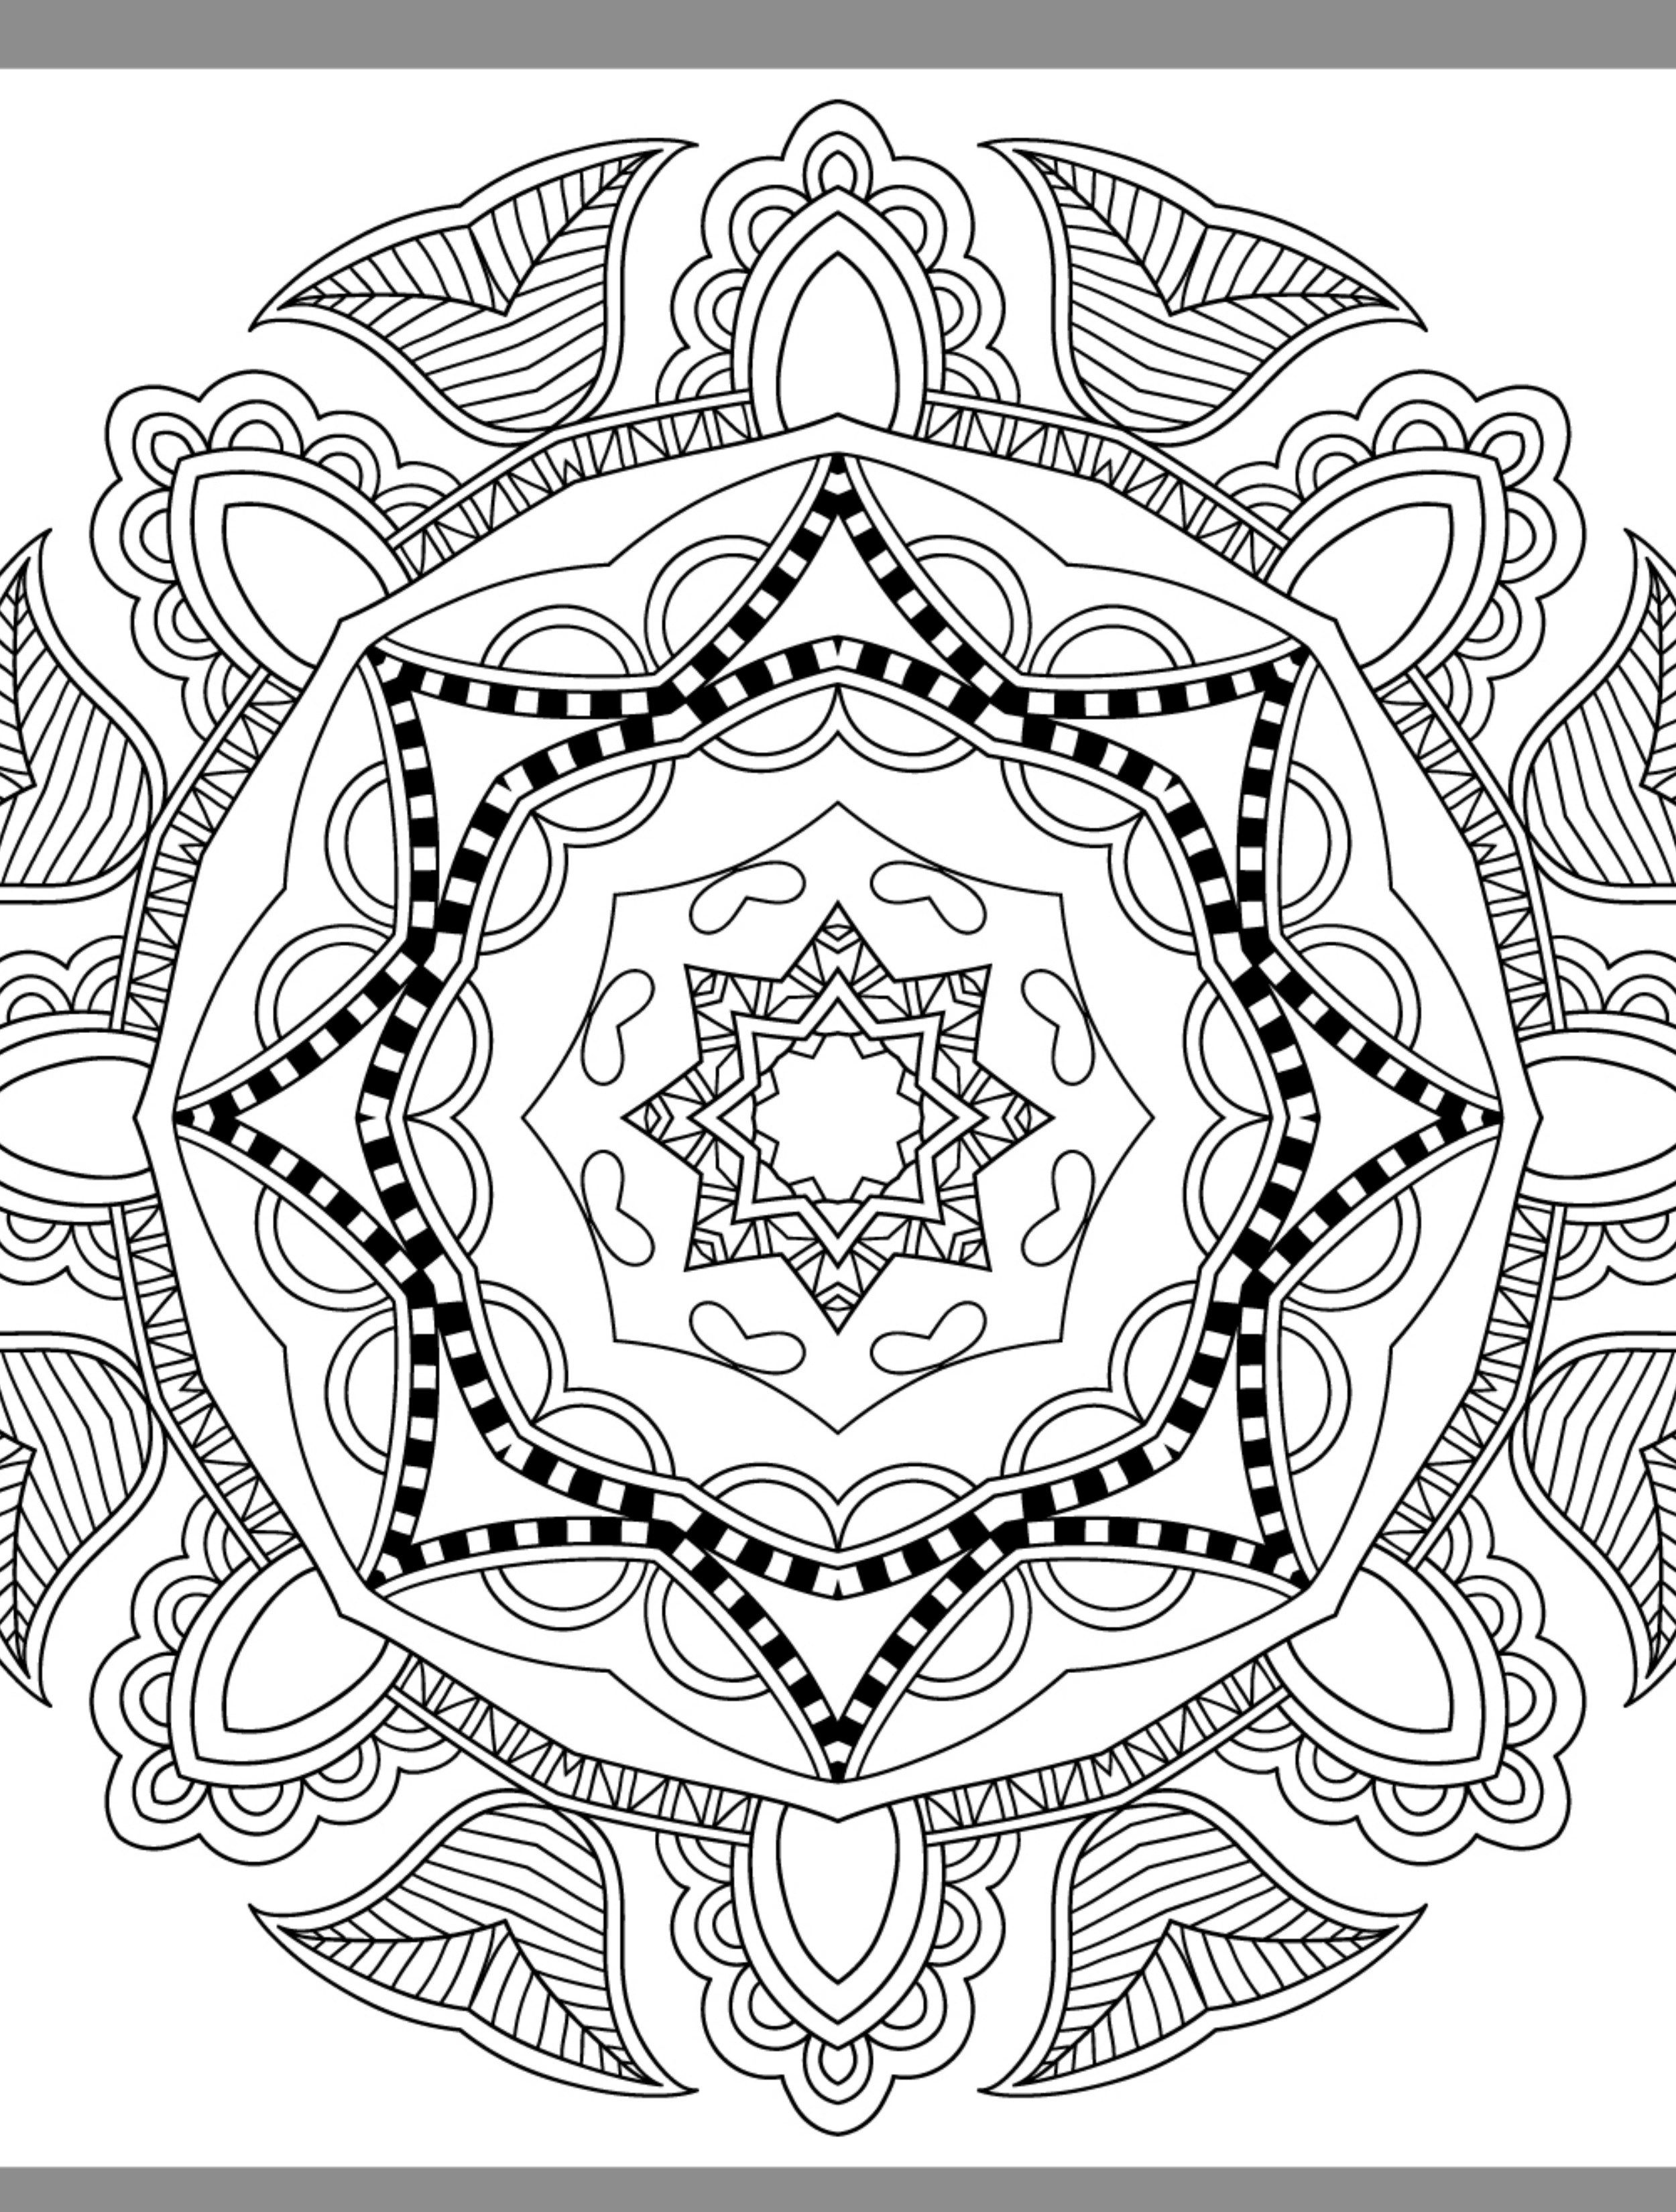 24 More Free Printable Adult Coloring Pages Cool Coloring Pages